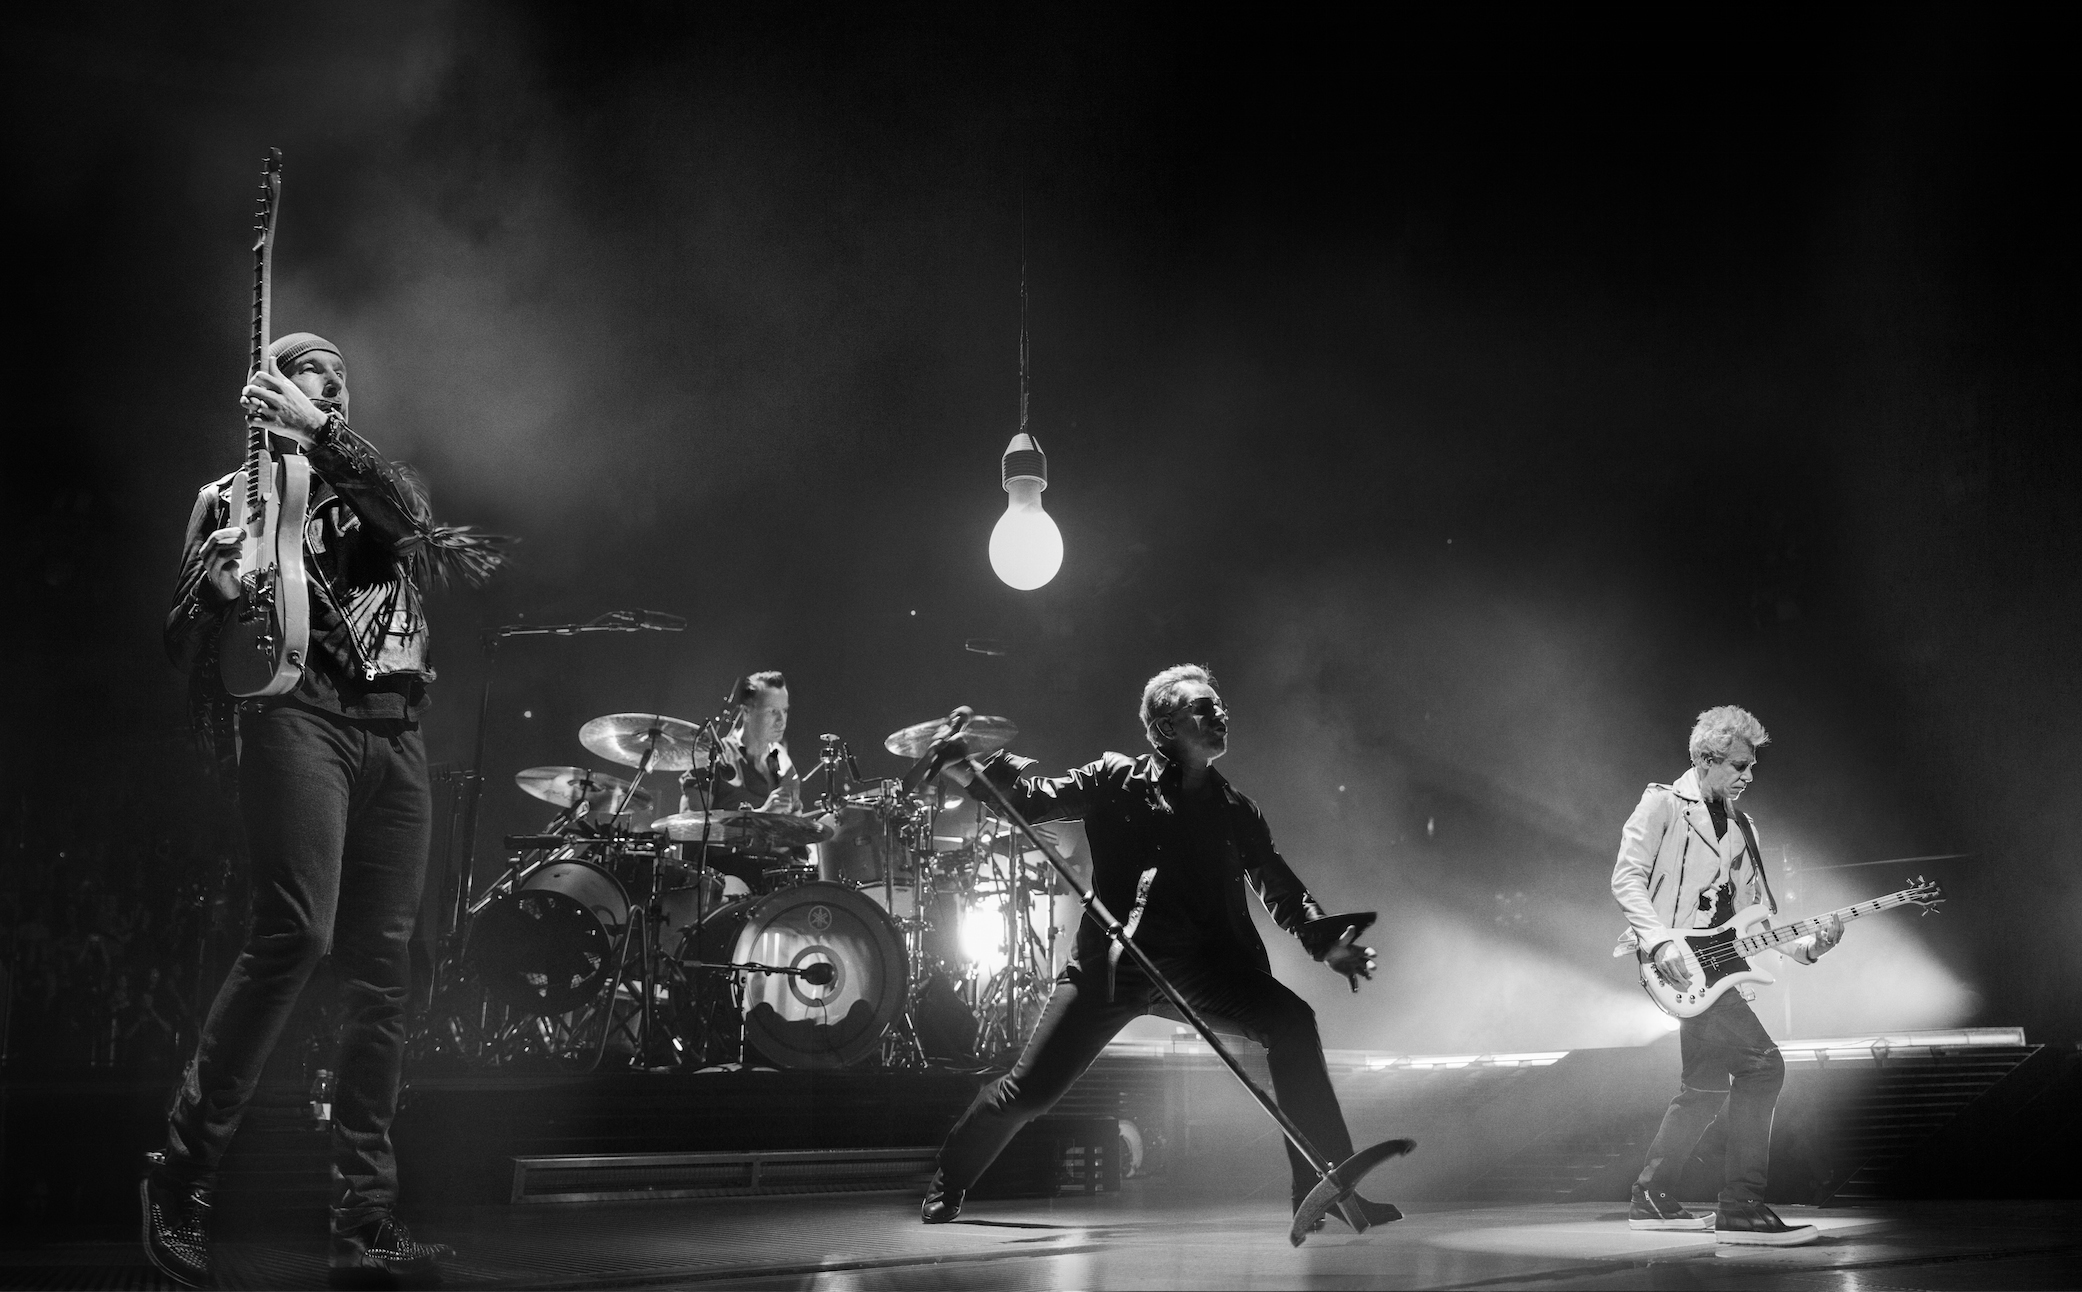 U2 announce 'U2: The Virtual Road' - a series of four concerts broadcast for the first time exclusively on the band's YouTube channel 2